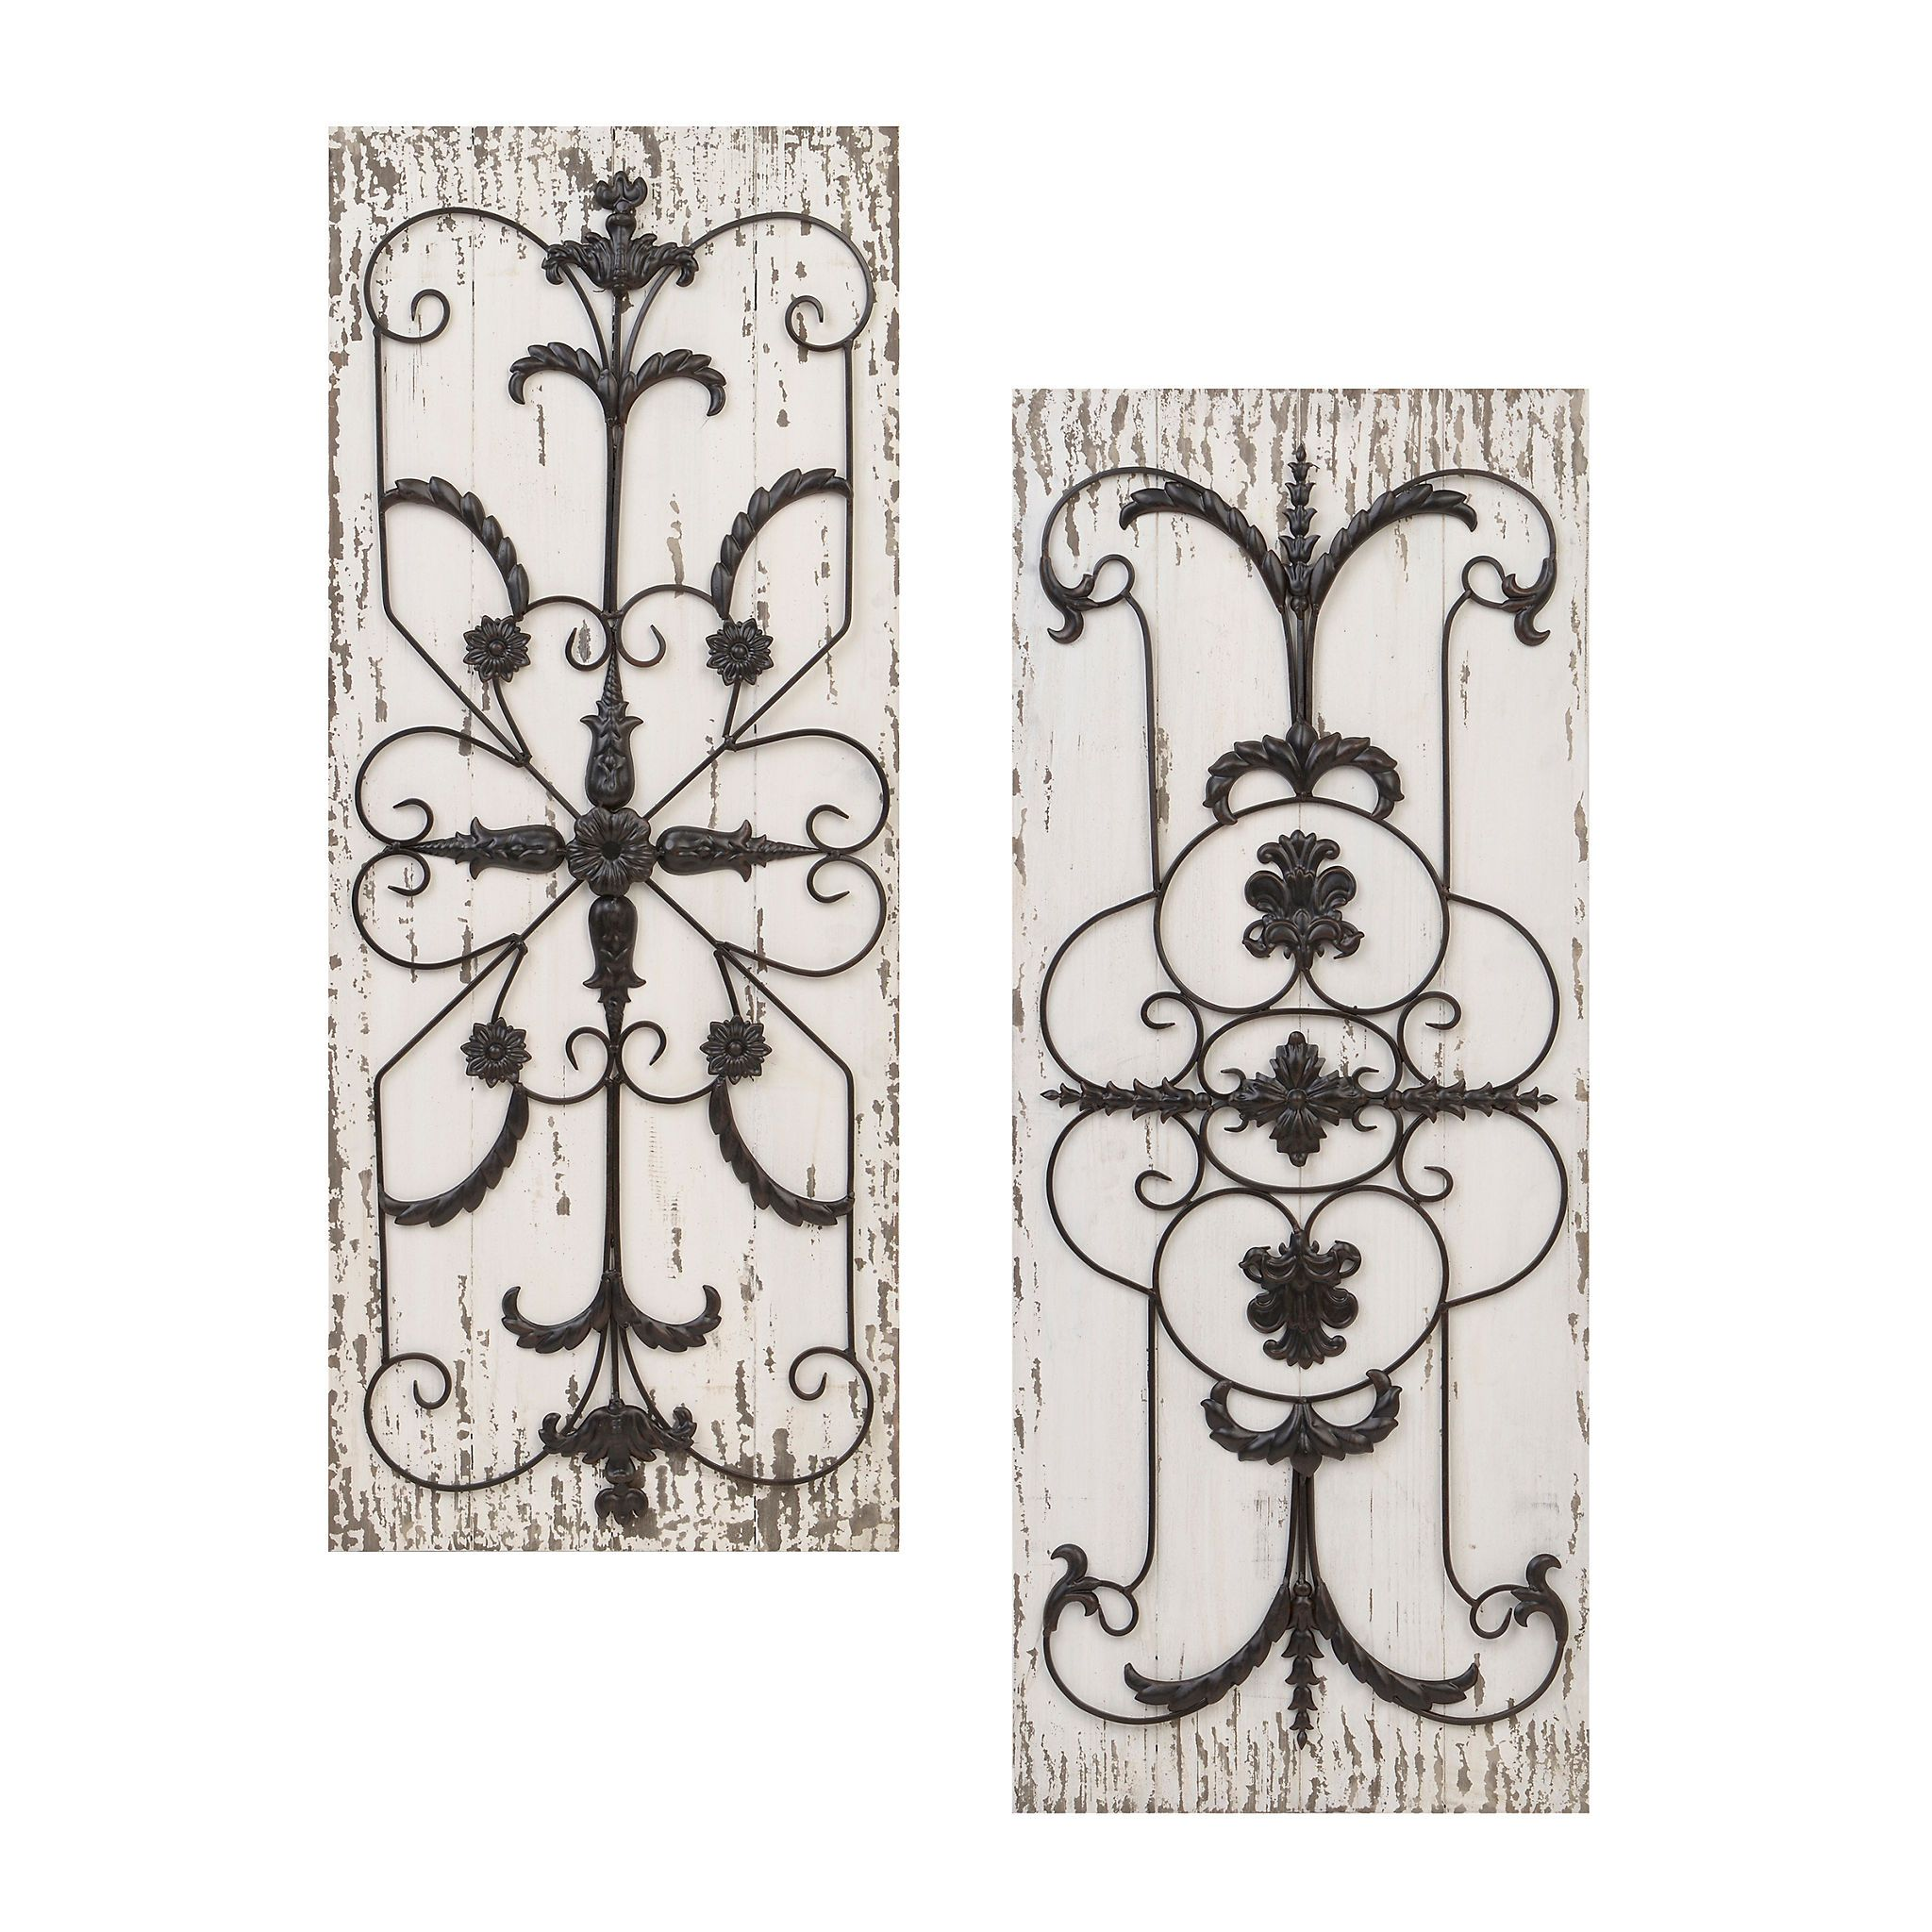 Adelaide Distressed White Wooden Plaque Set Of 2 Steampunk Home Decor Wood Wall Decor Wooden Wall Decor